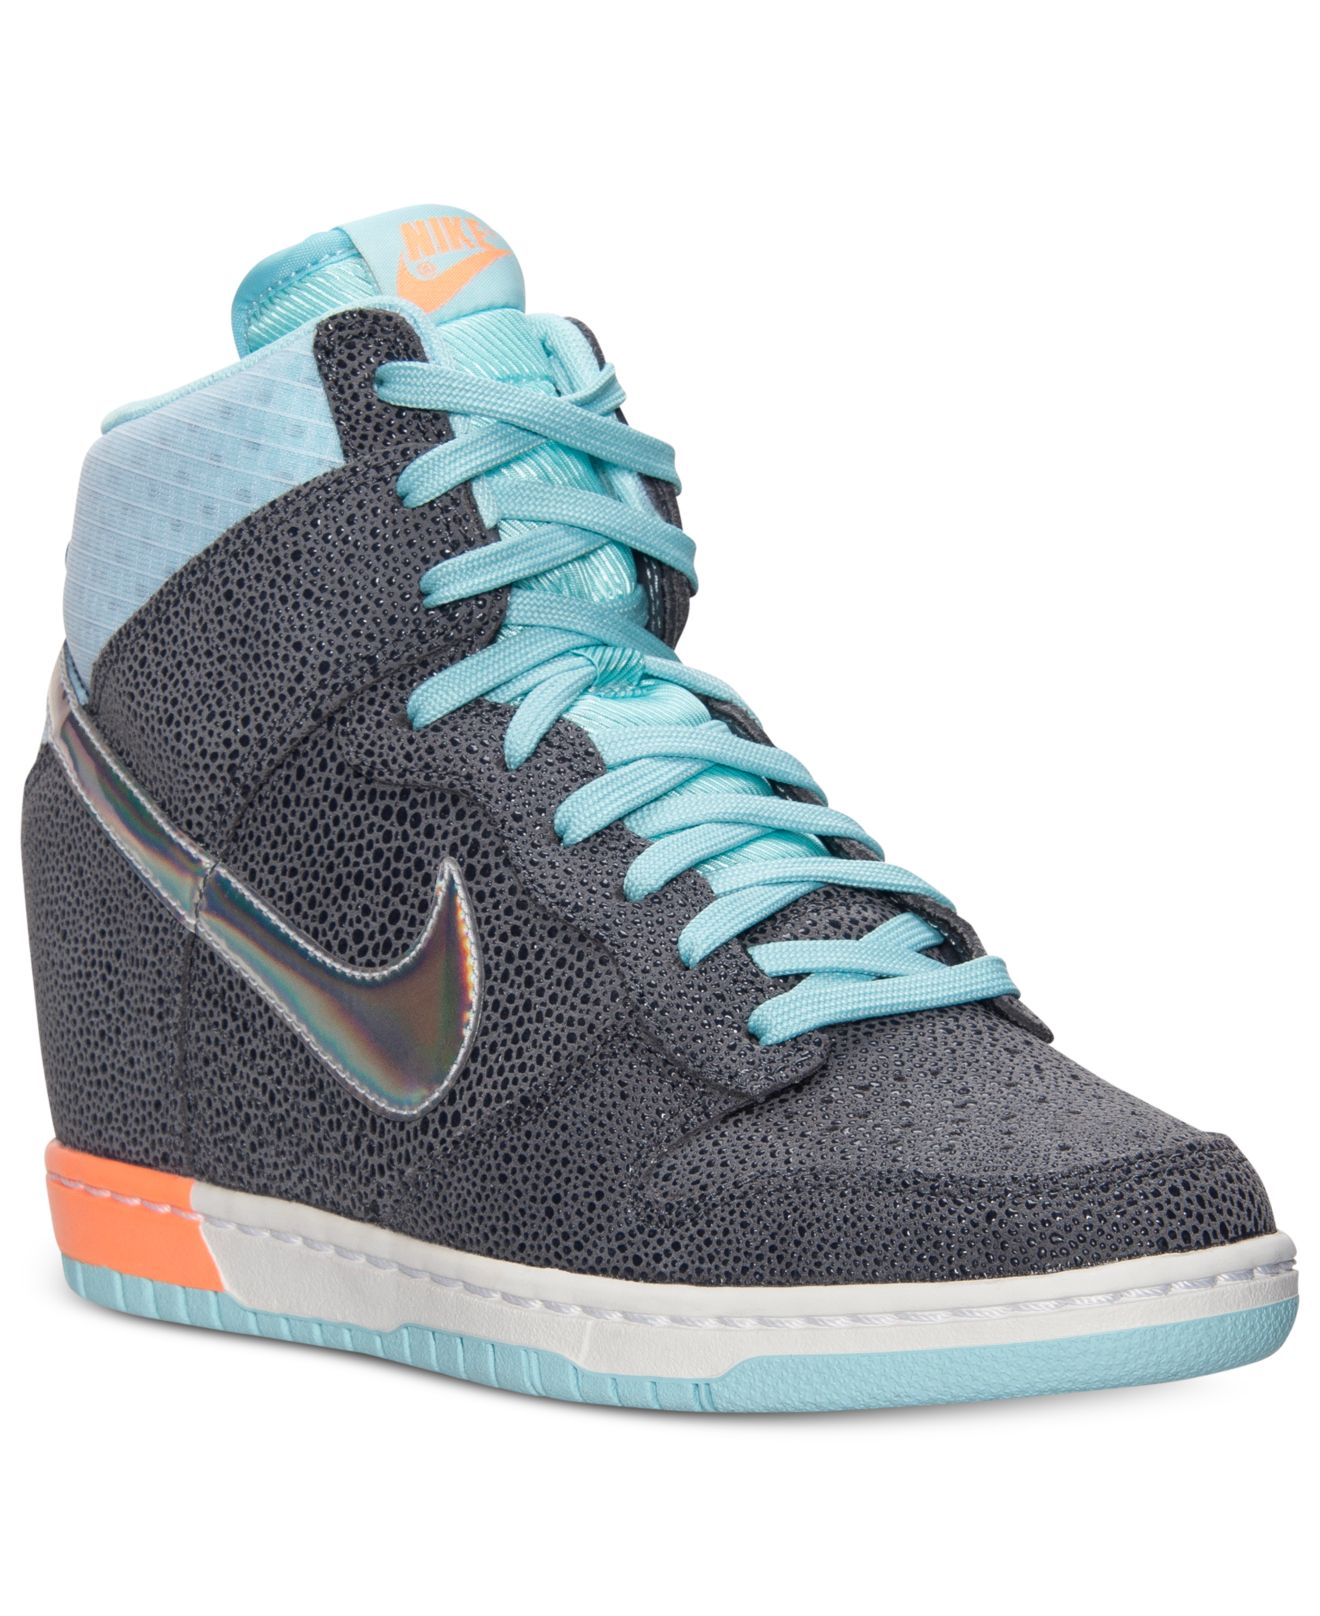 new arrivals 21245 002fa nike dunk finish line